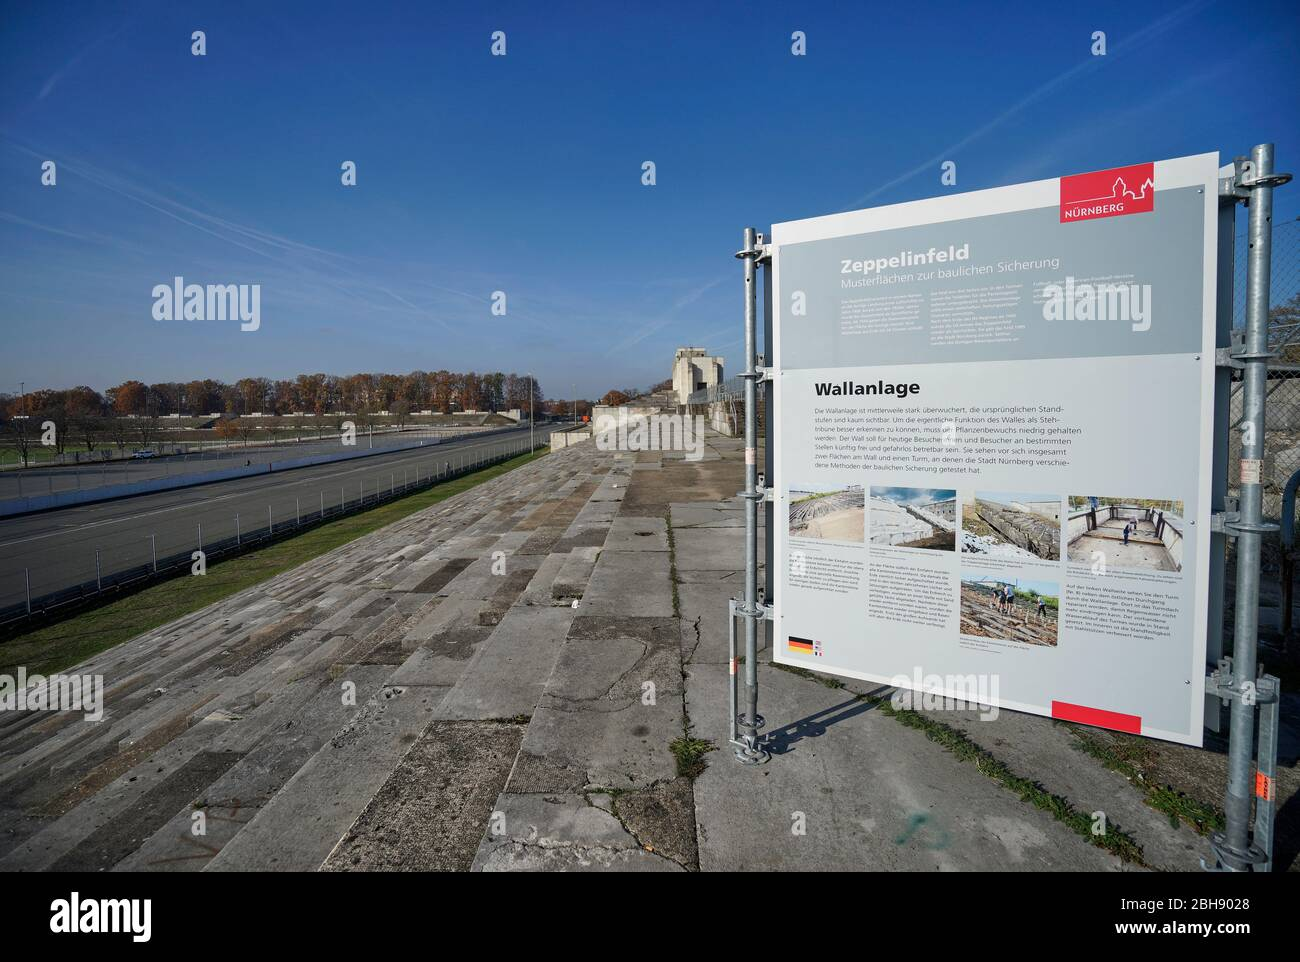 28 Schautafel High Resolution Stock Photography and Images   Alamy